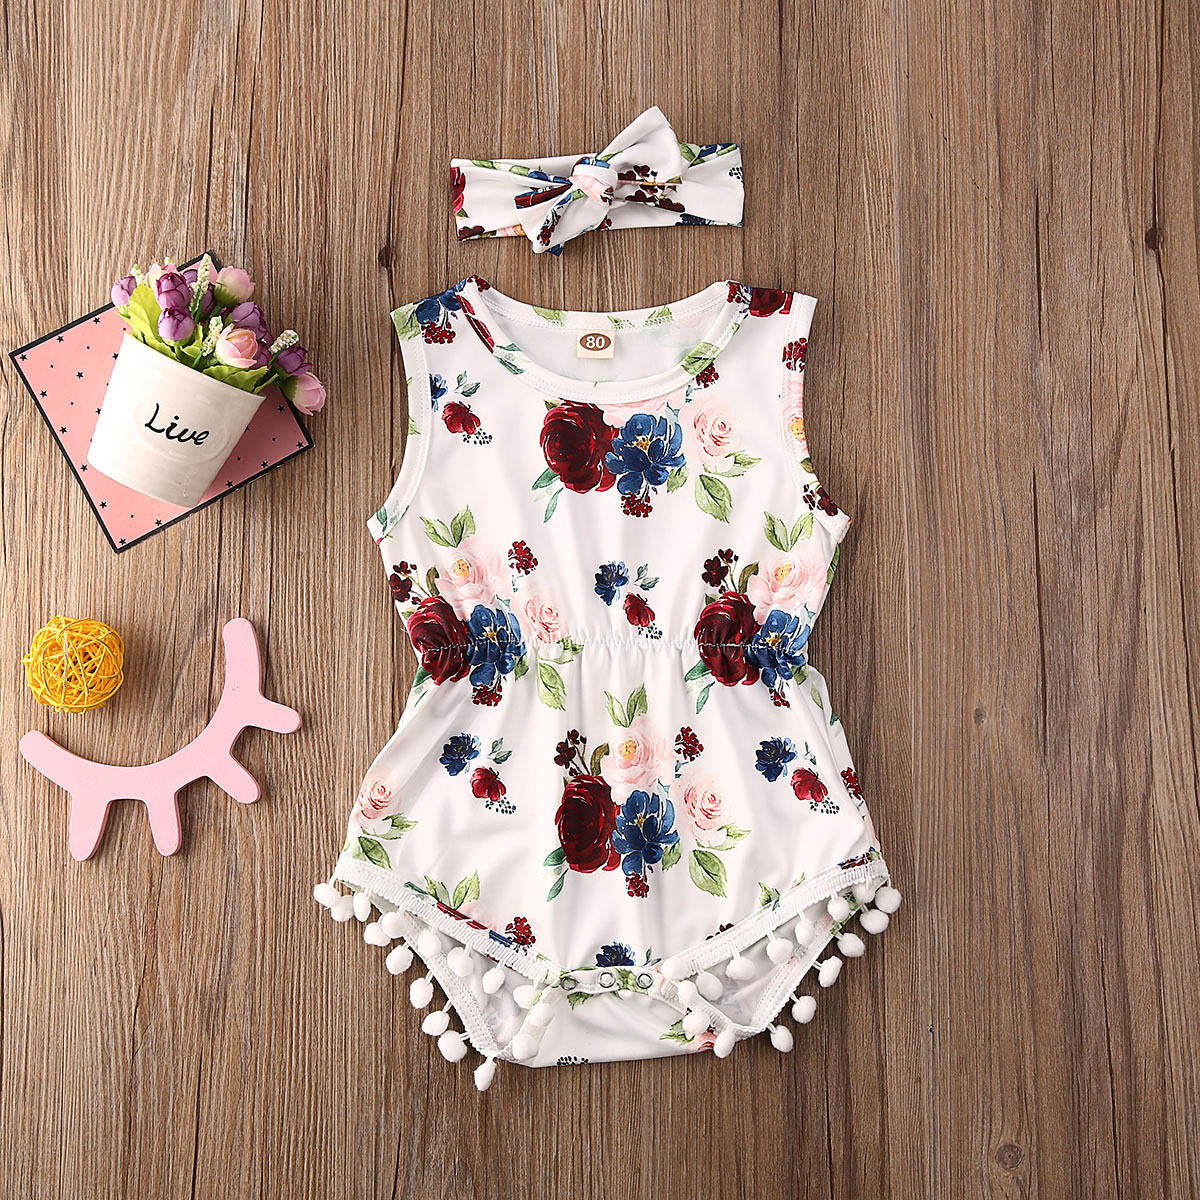 Emmababy Newborn Baby Girl Clothes Sleeveless Flower Rose Print Tassels Romper Jumpsuit Headband 2Pcs Outfits Cotton Sunsuit